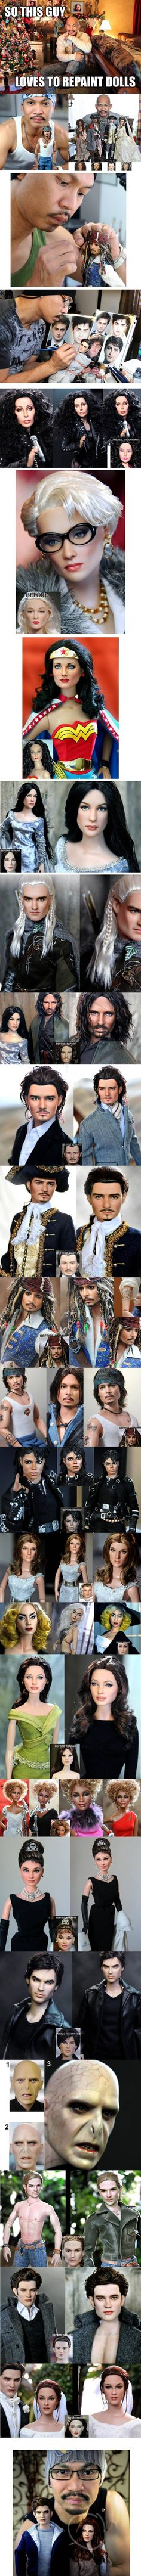 Awesome,love the Johnny Depp,and Jack Sparrow dolls.